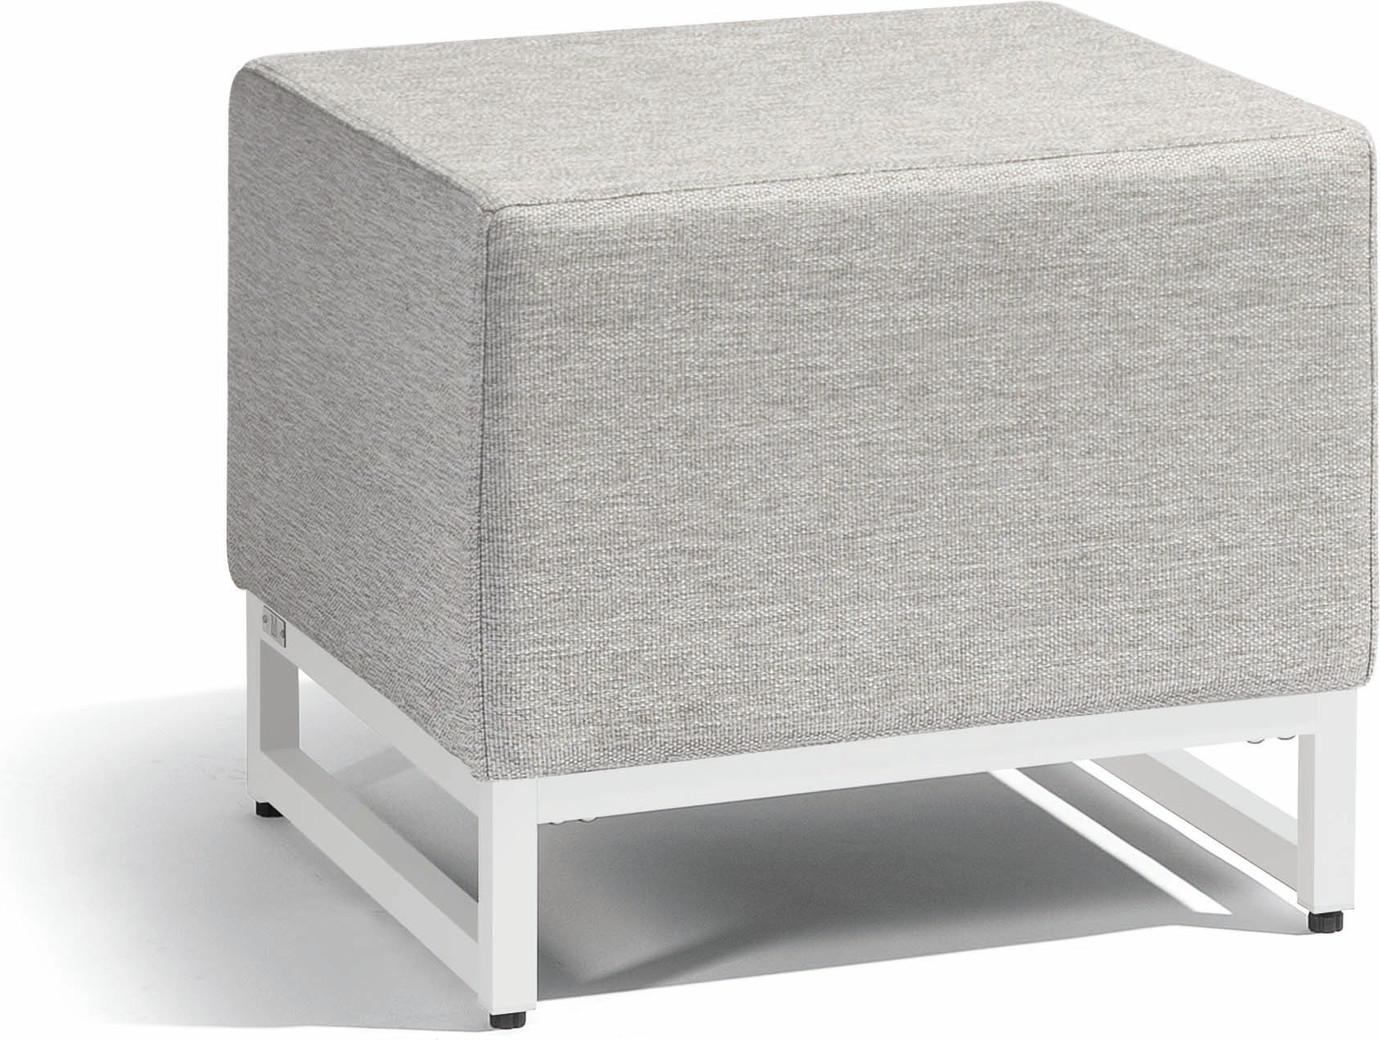 Zendo small footstool seat - white - lotus smokey